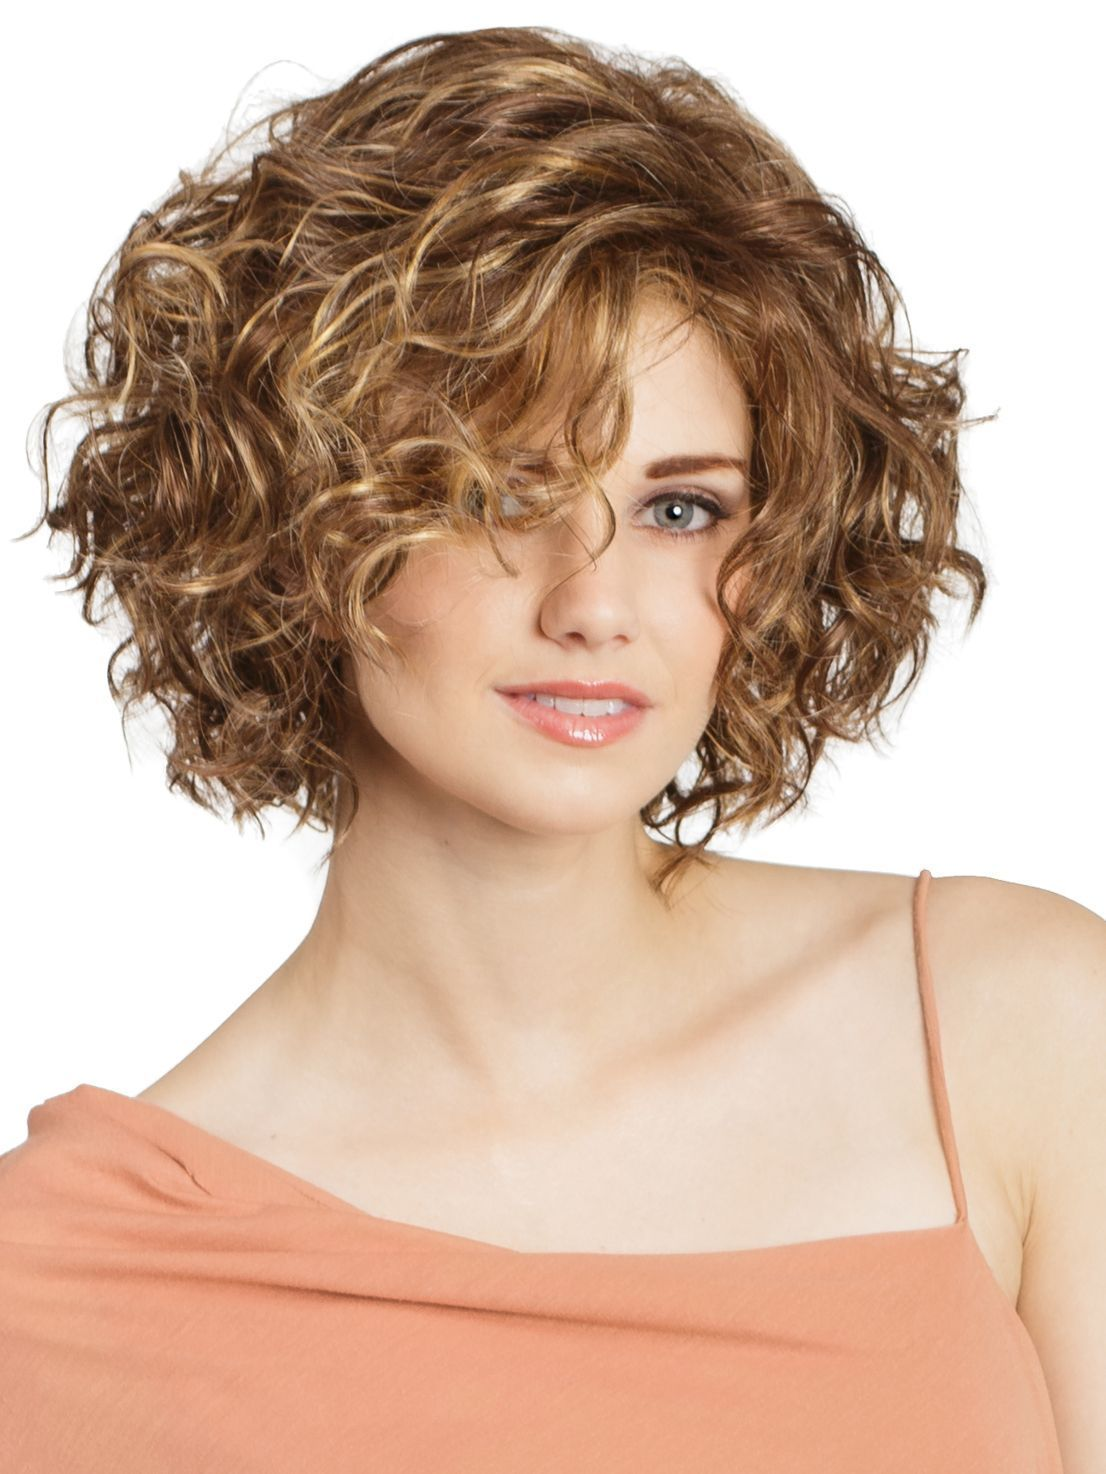 Pin Auf Curly Hairstyles